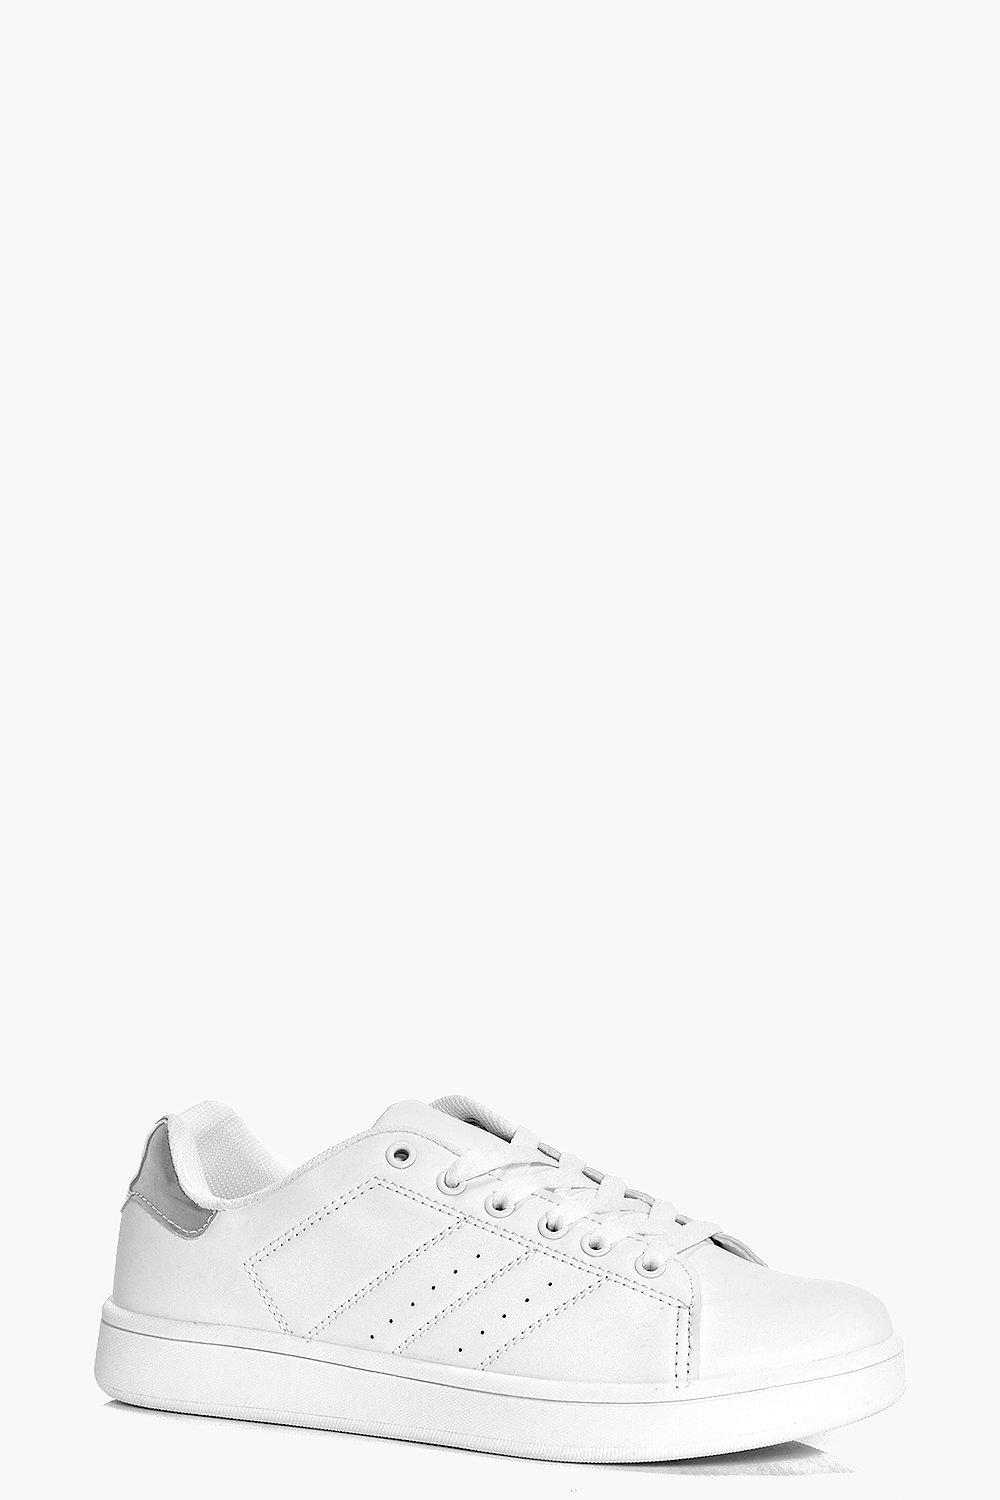 Leila Lace Up Contrast Back Trainer